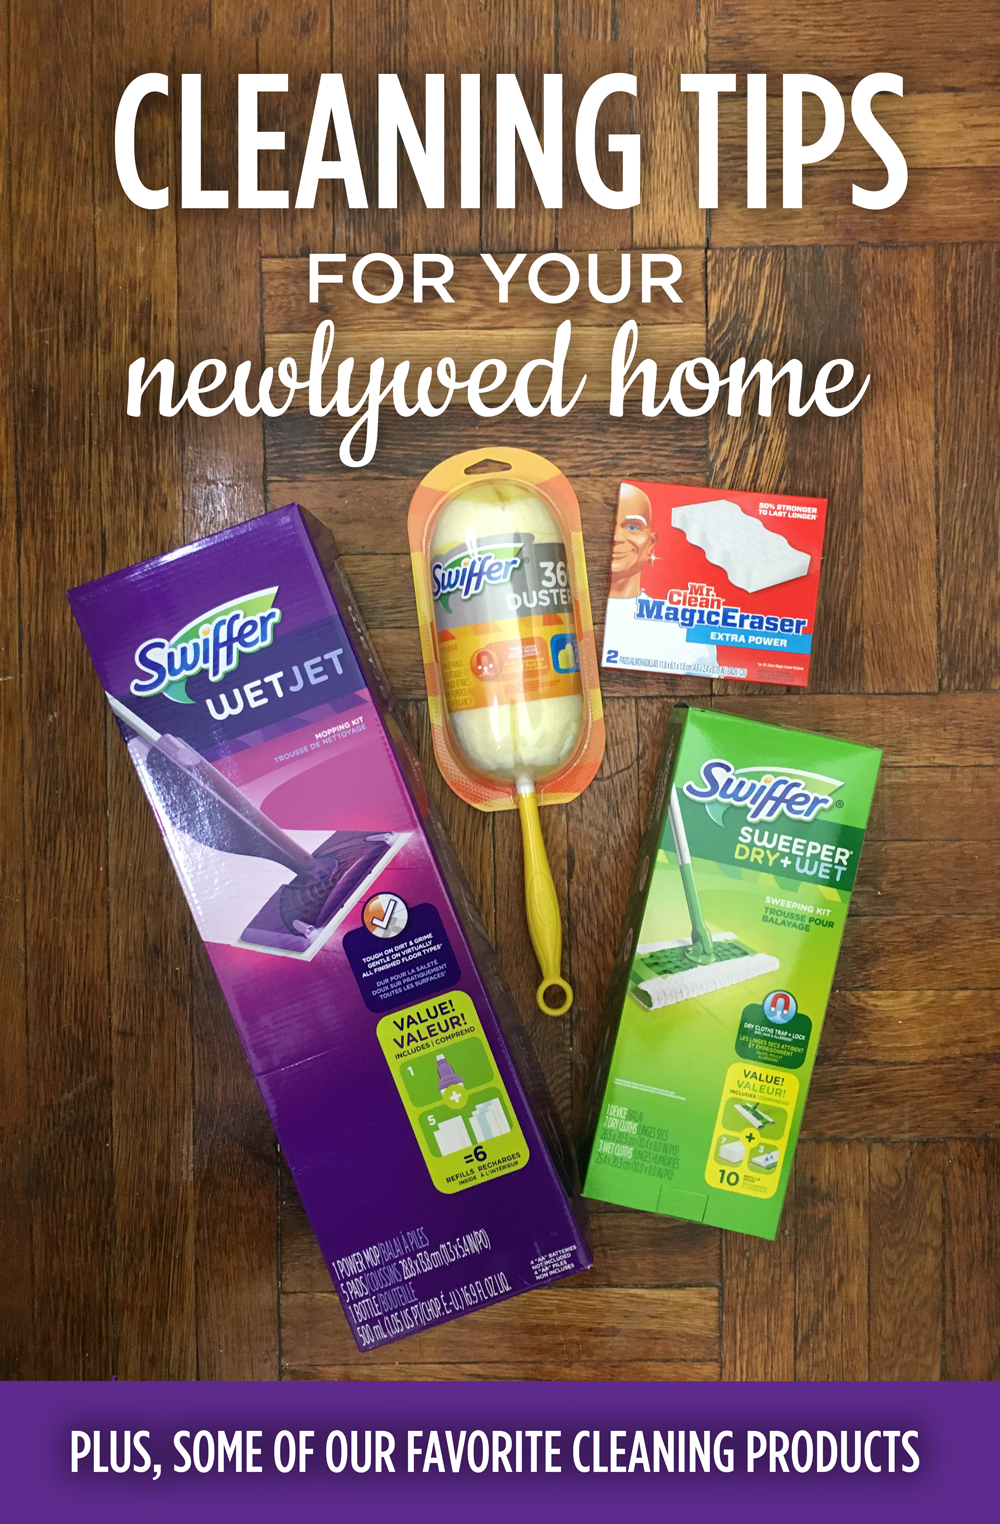 Cleaning tips for your newlywed home the budget savvy bride - Home secrets brief cleaning guide ...